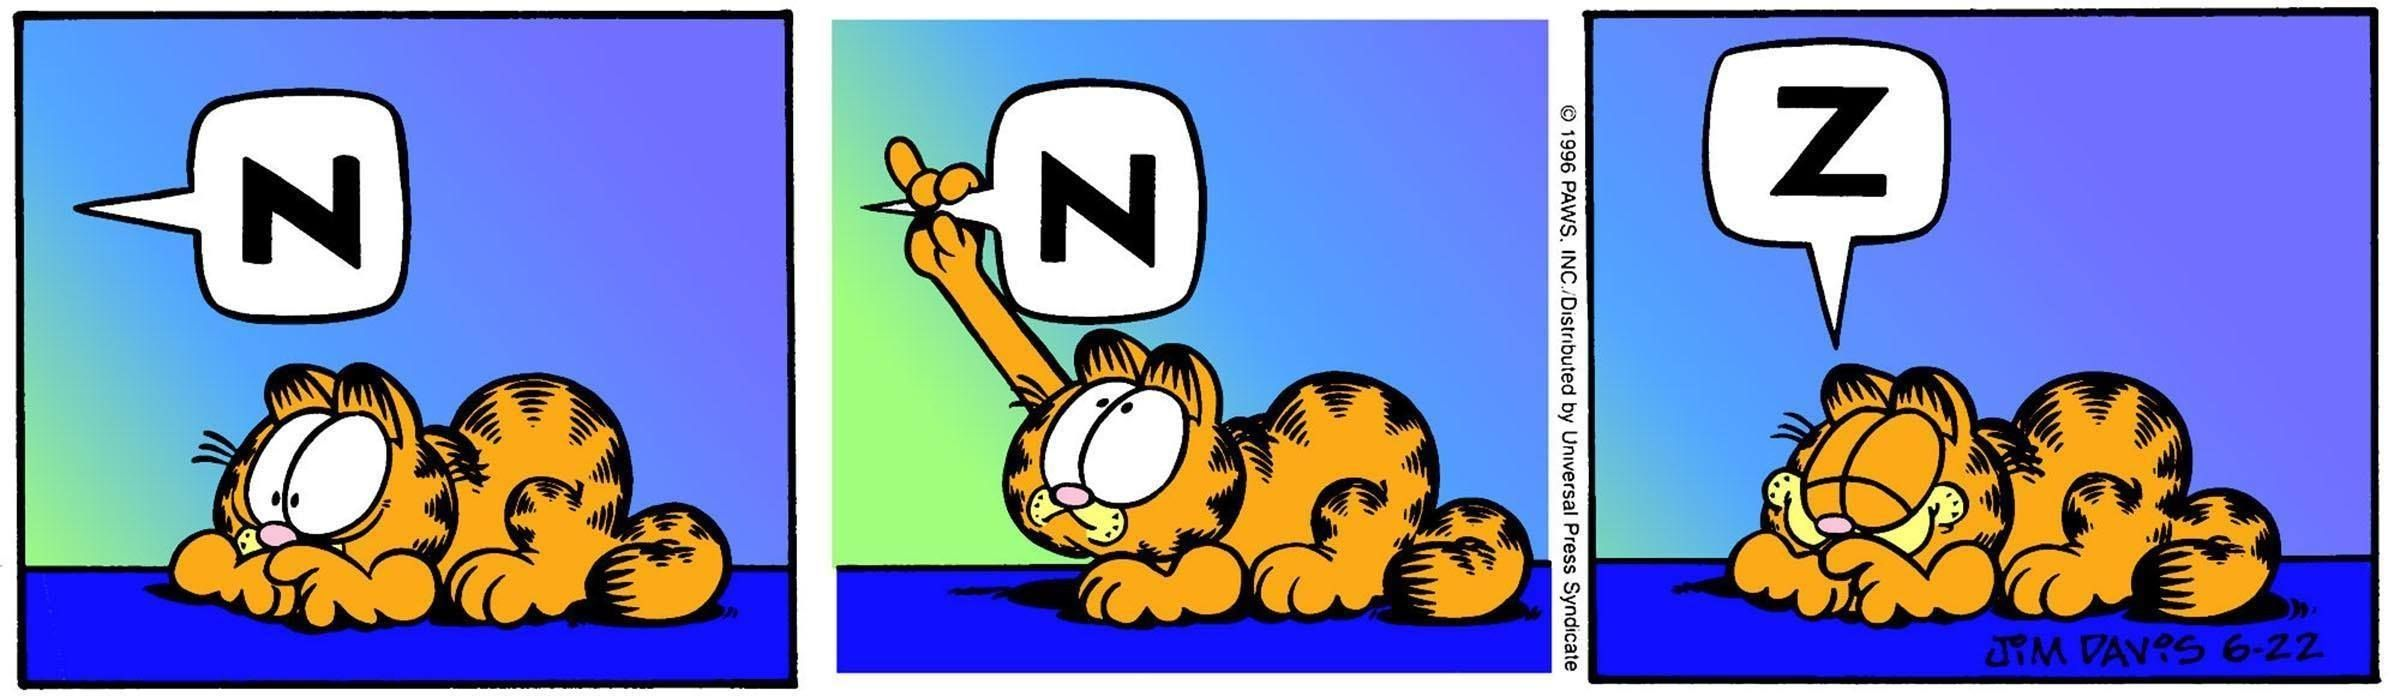 night night garfield, night night pinterest, night night